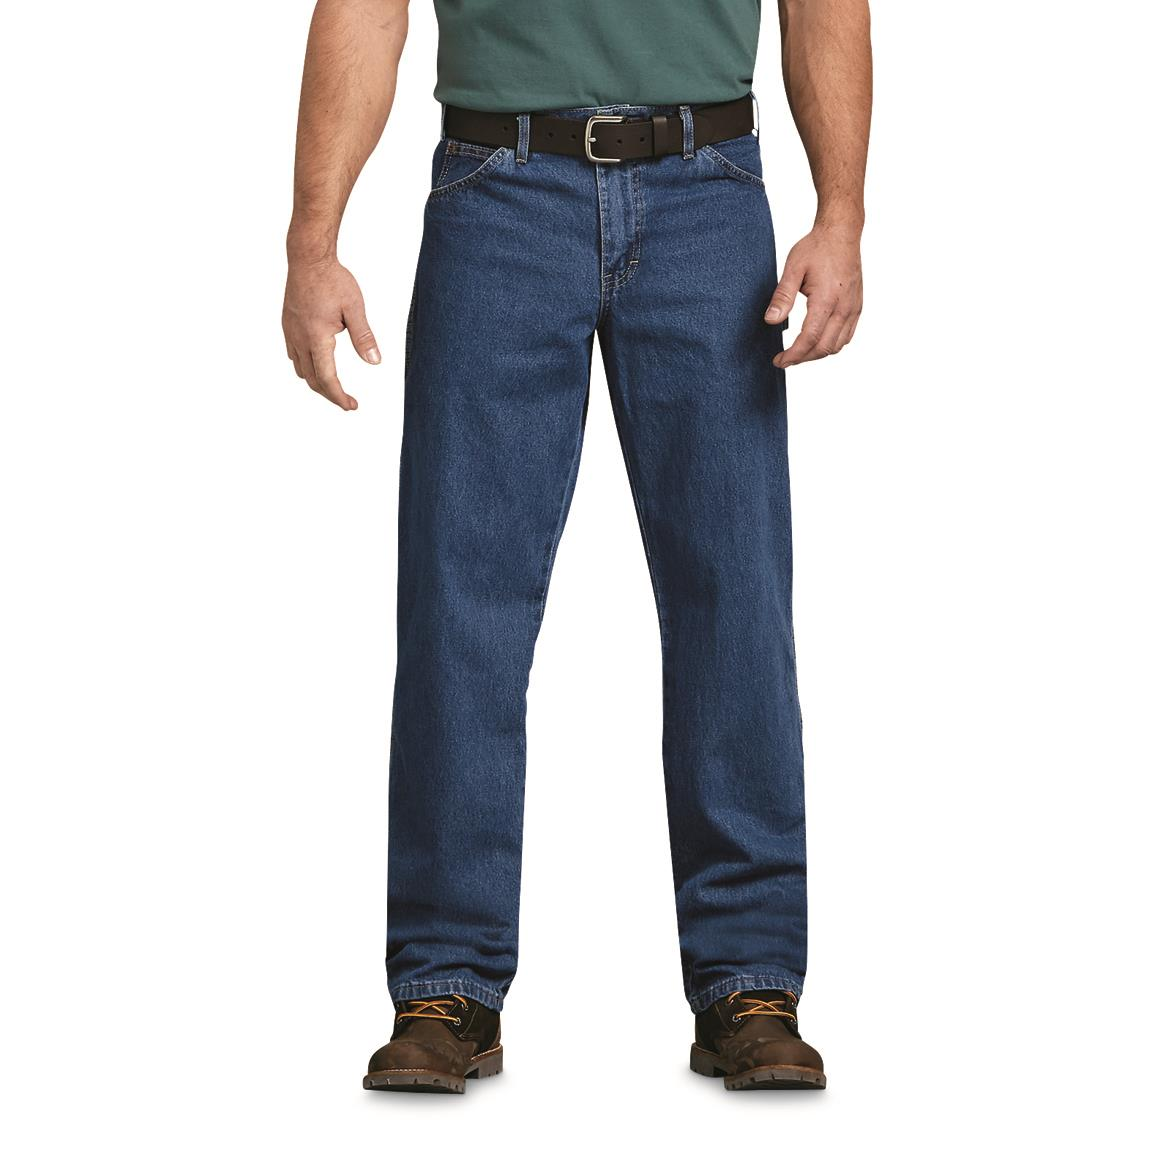 Men's Dickies Relaxed Fit Carpenter Jeans, Stonewashed